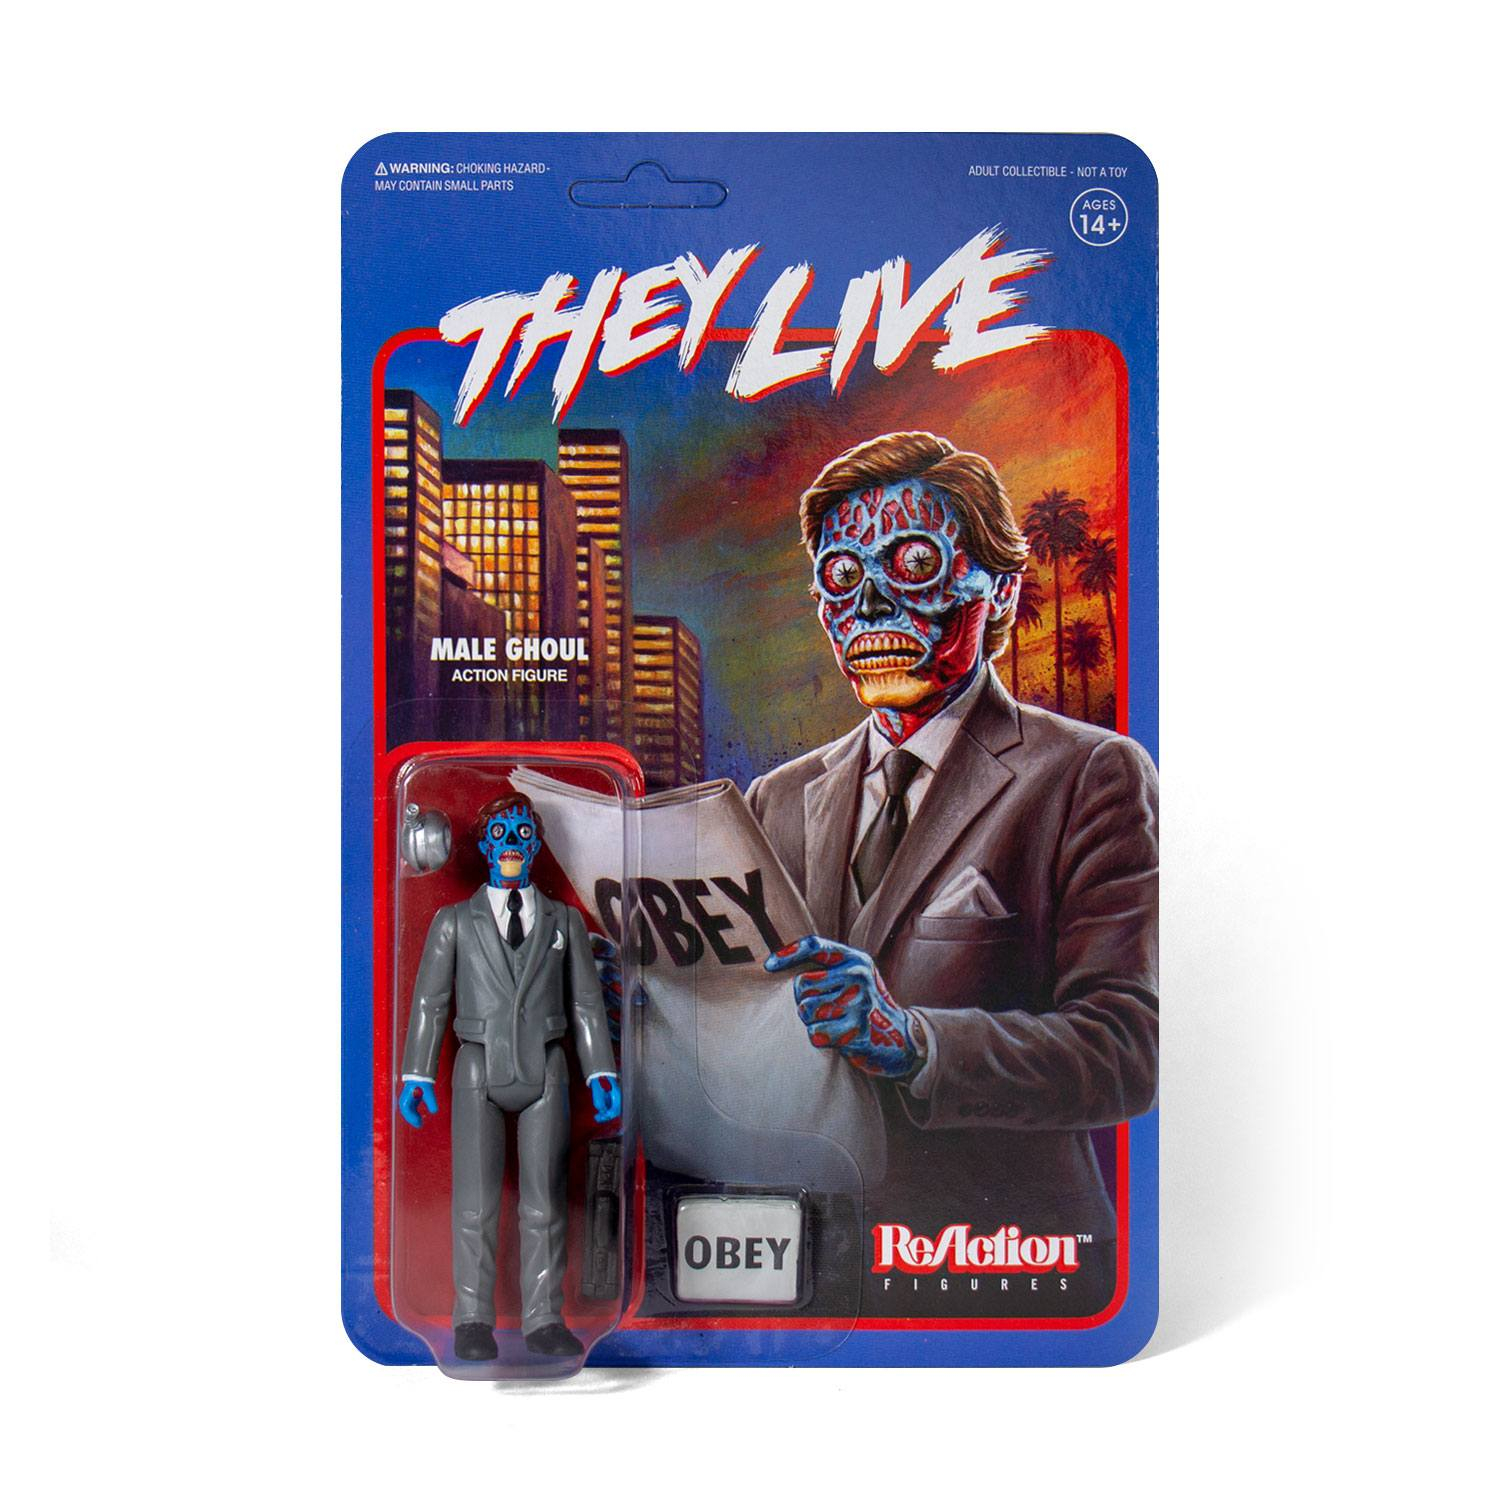 *PREORDER* Essi Vivono - They Live ReAction Action Figure: MALE GHOUL by Super7